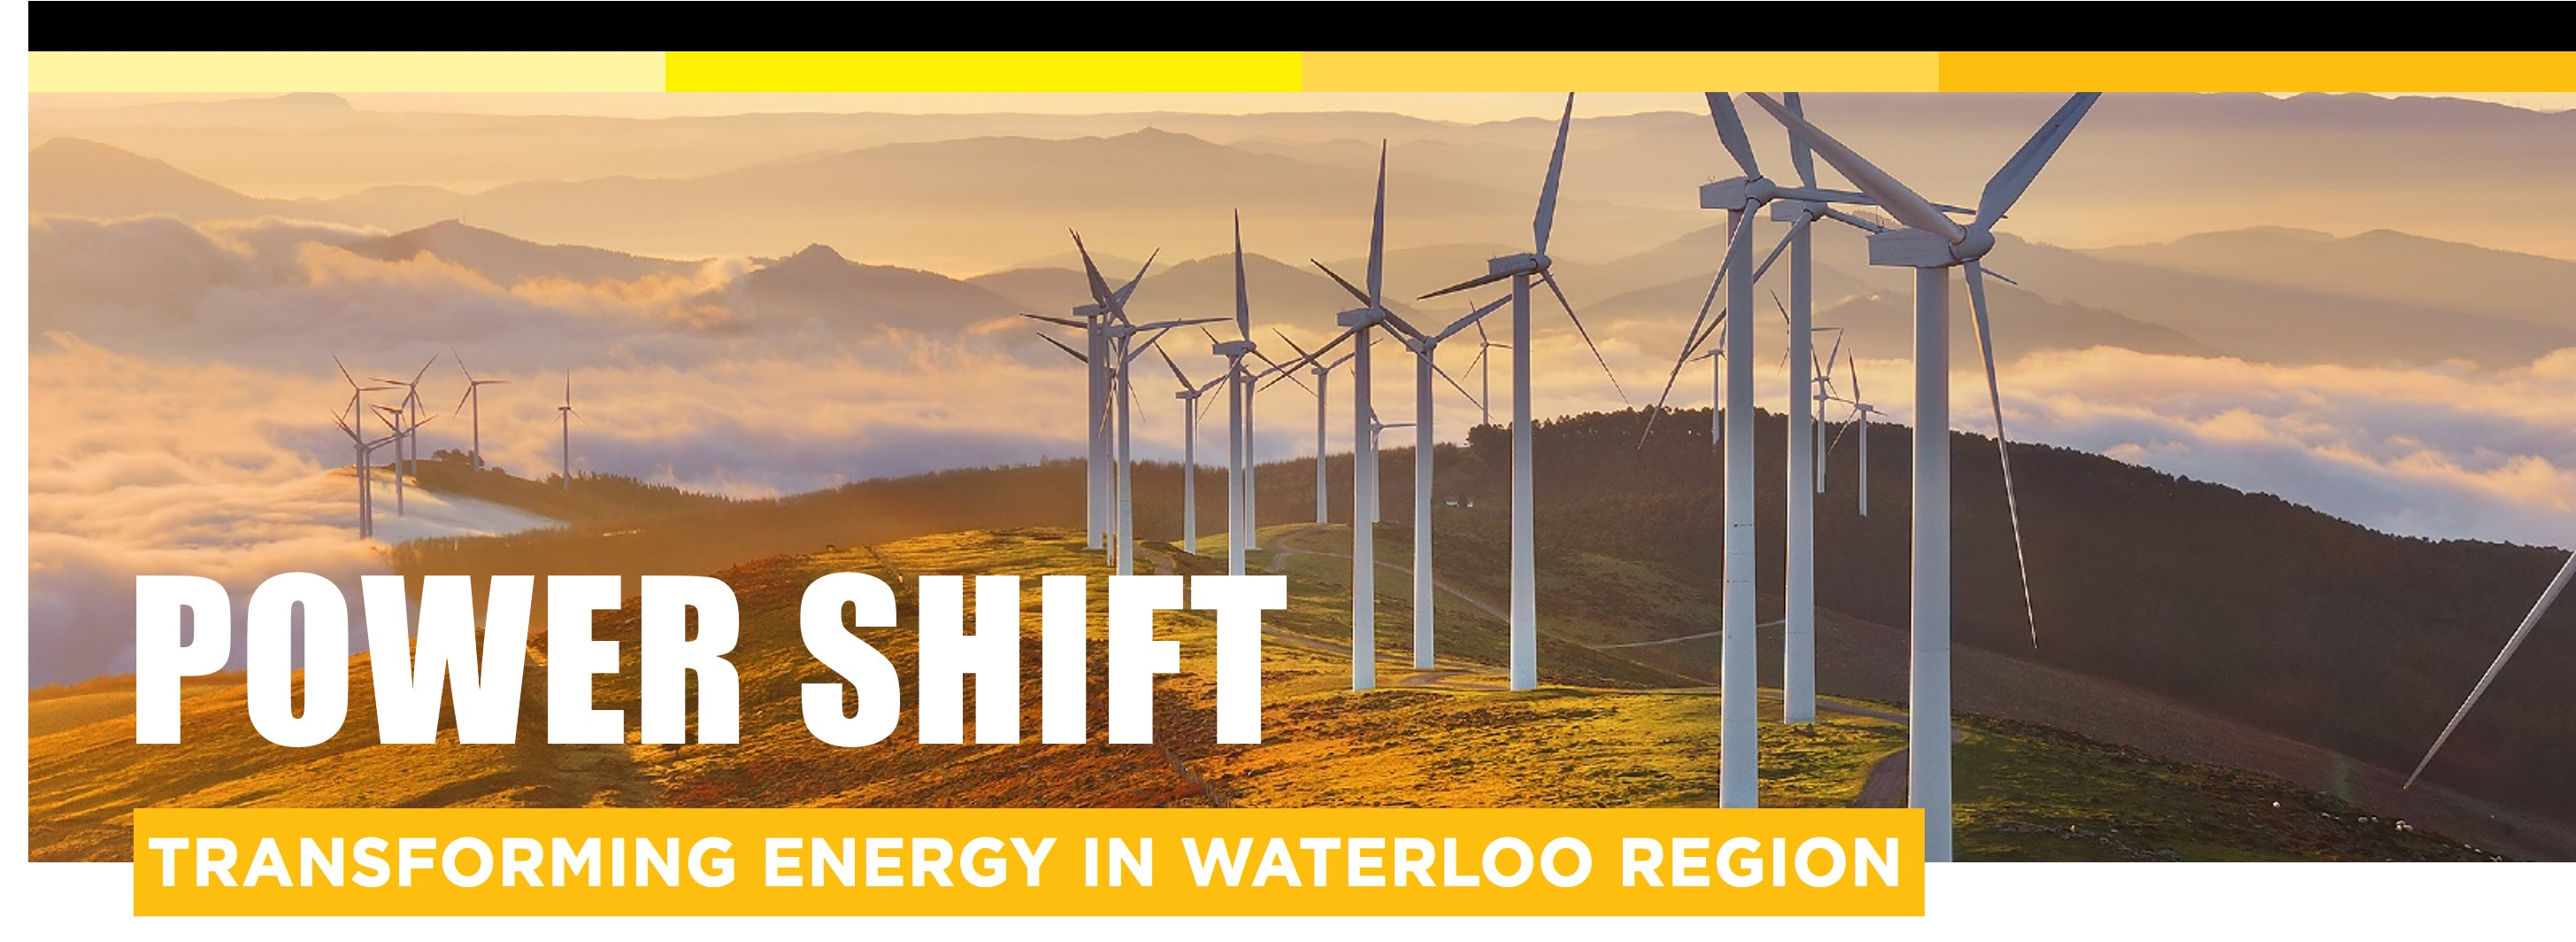 Power Shift - Transforming energy in Waterloo Region - header image with windmills in background